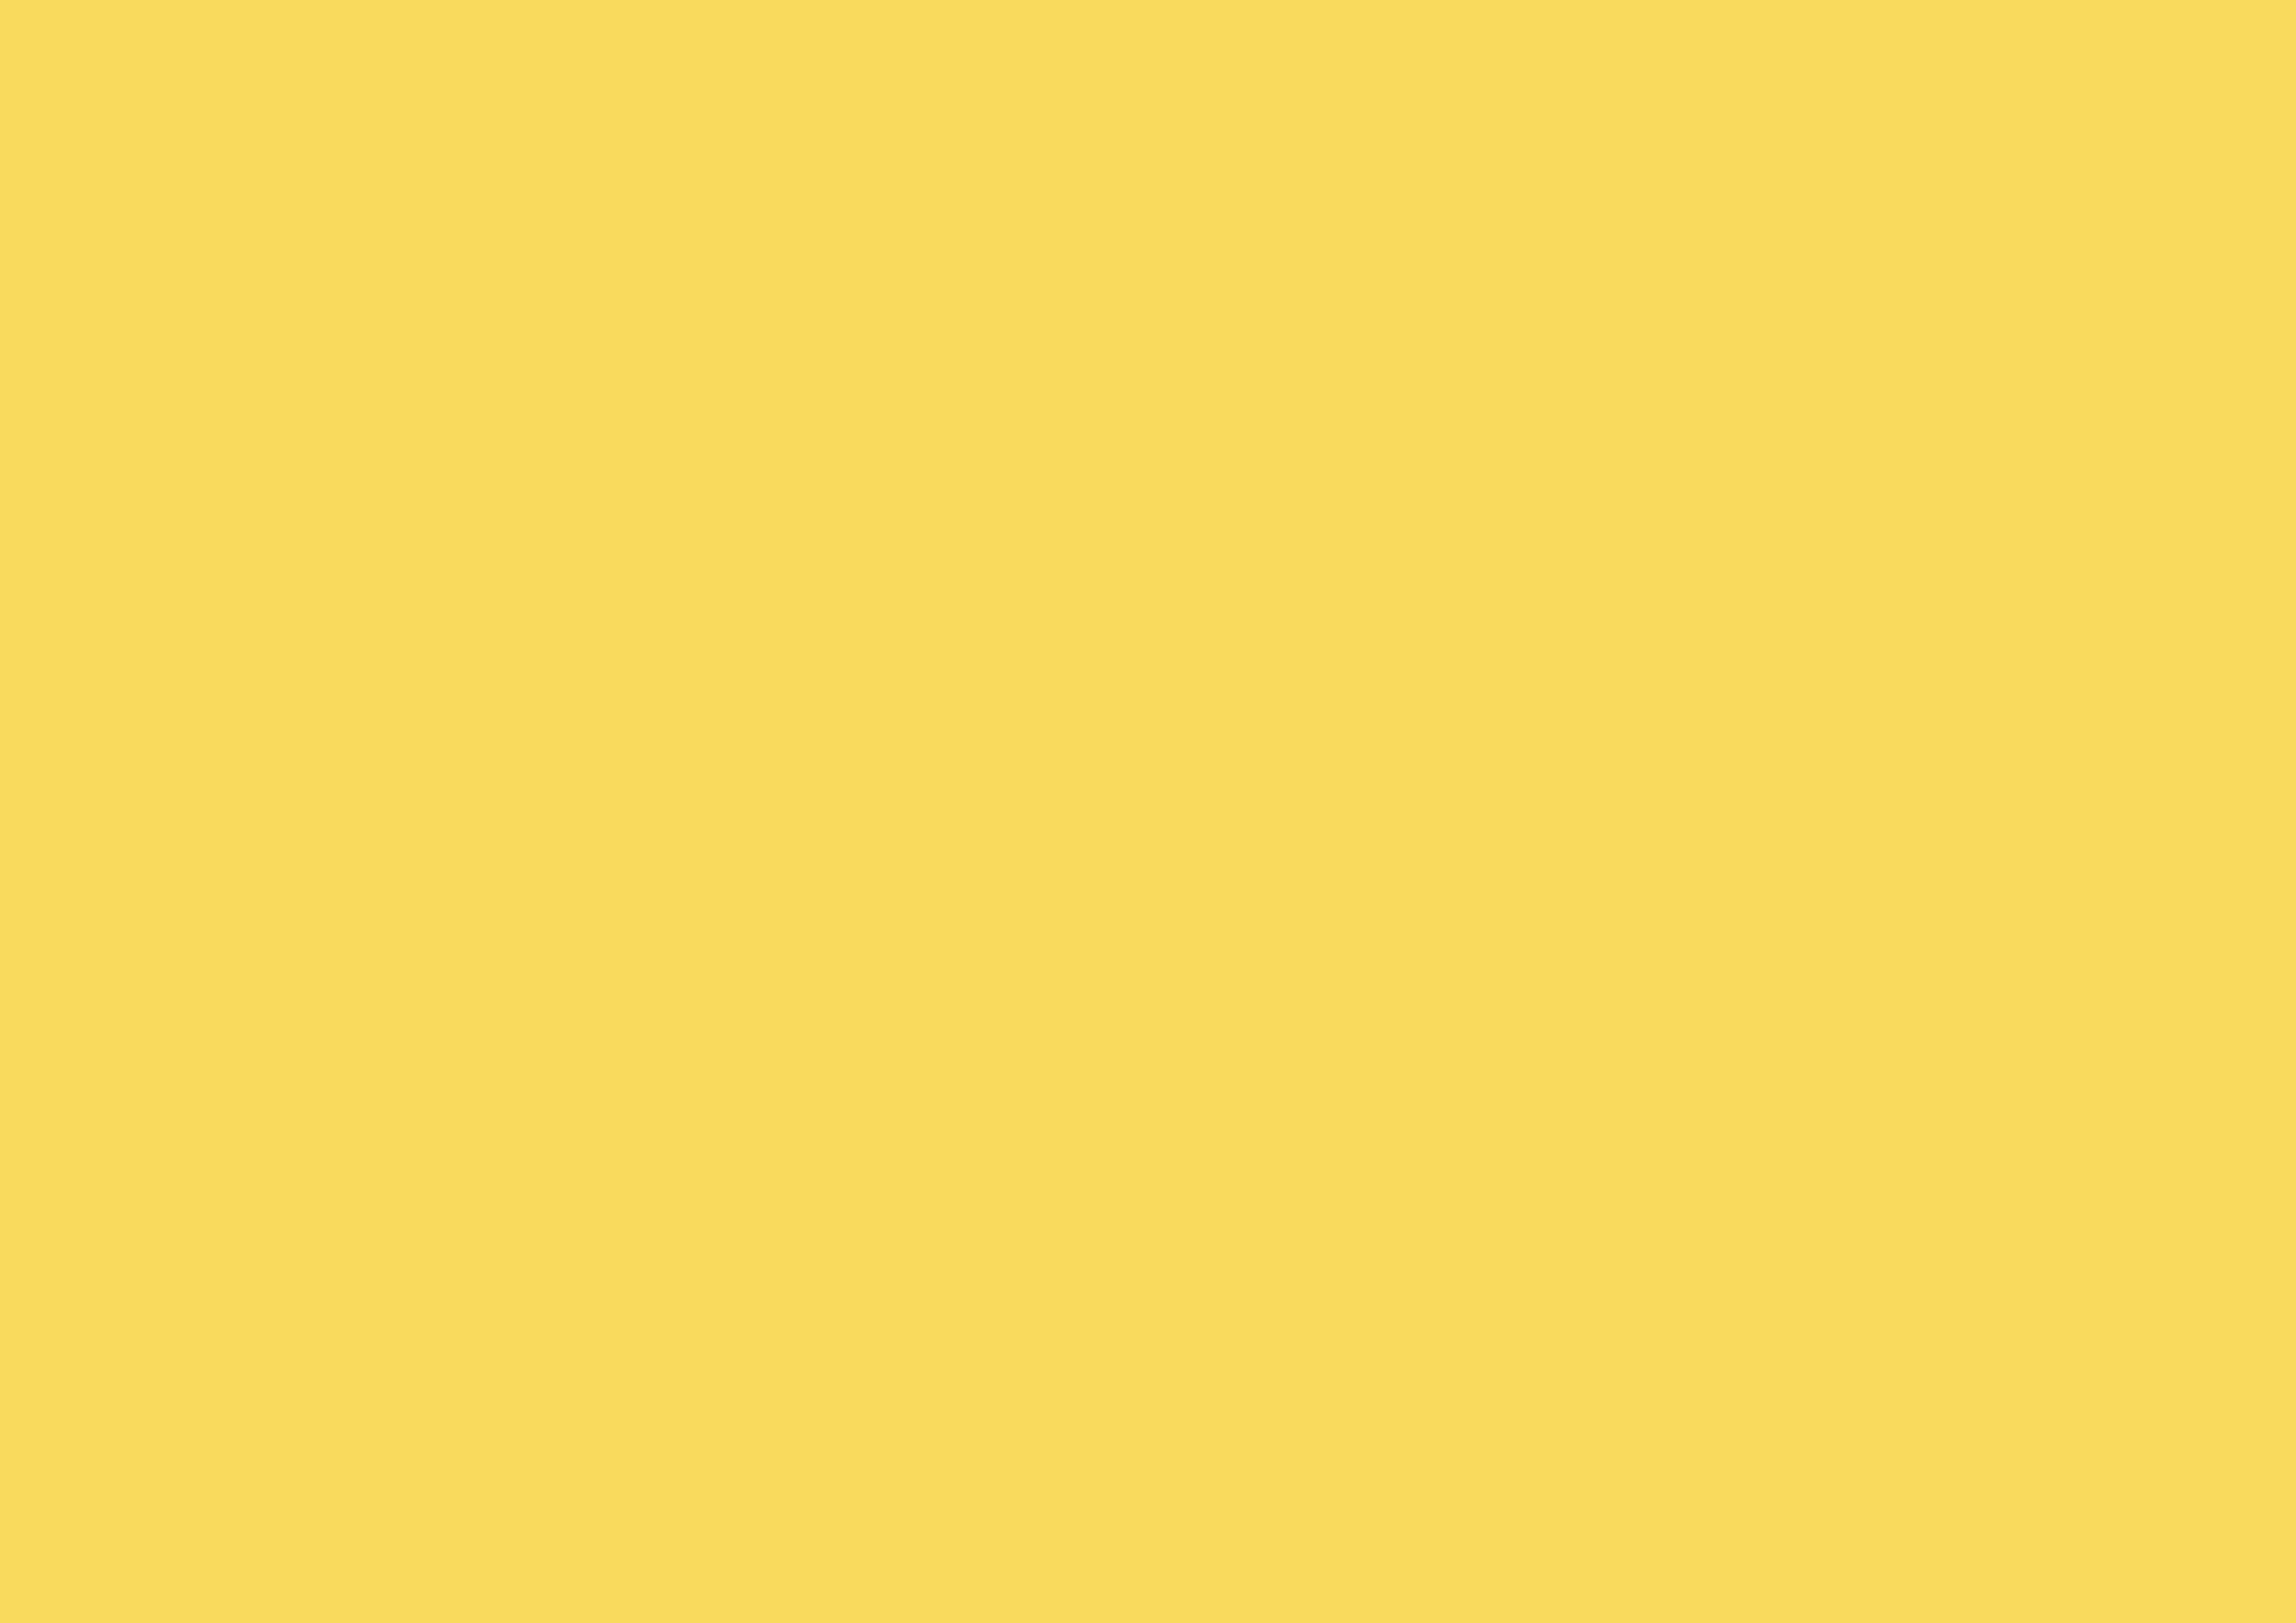 3508x2480 Naples Yellow Solid Color Background